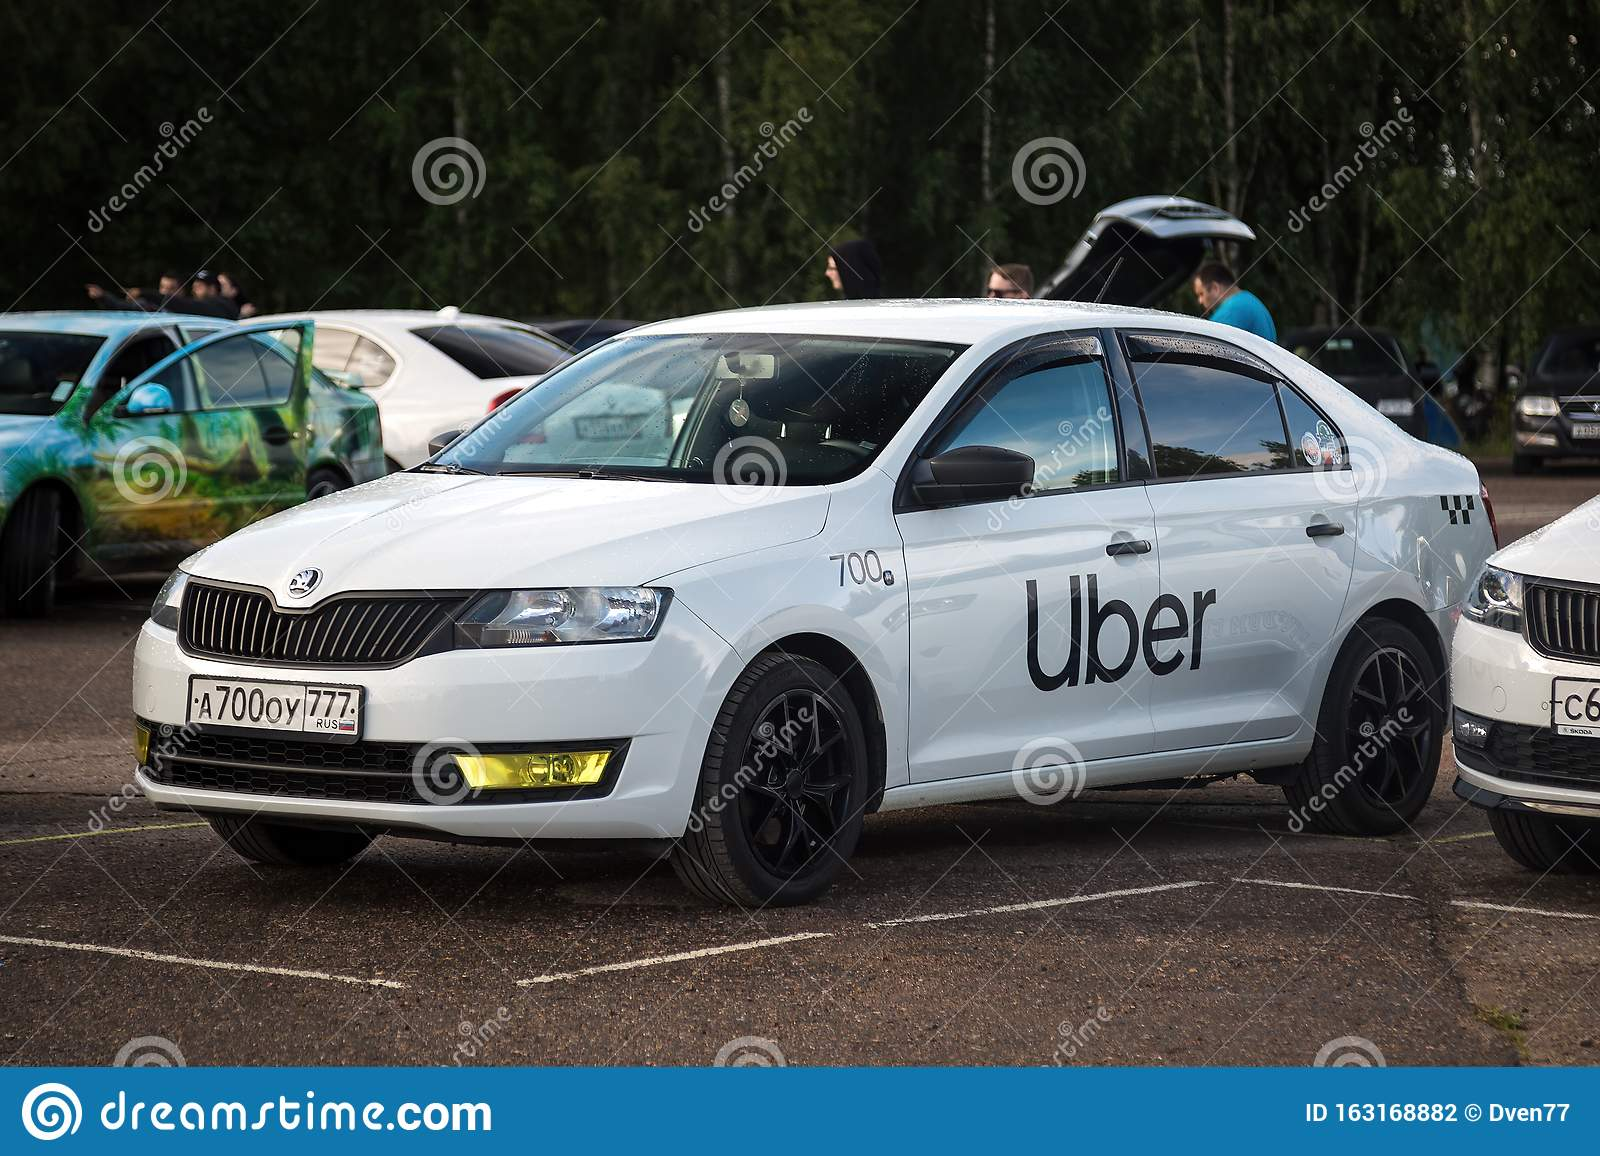 Moscow Russia July 06 2019 Skoda Car Of White Color Taxi Uber Is Standing In The Parking Lot Editorial Photography Image Of Logo Skoda 163168882